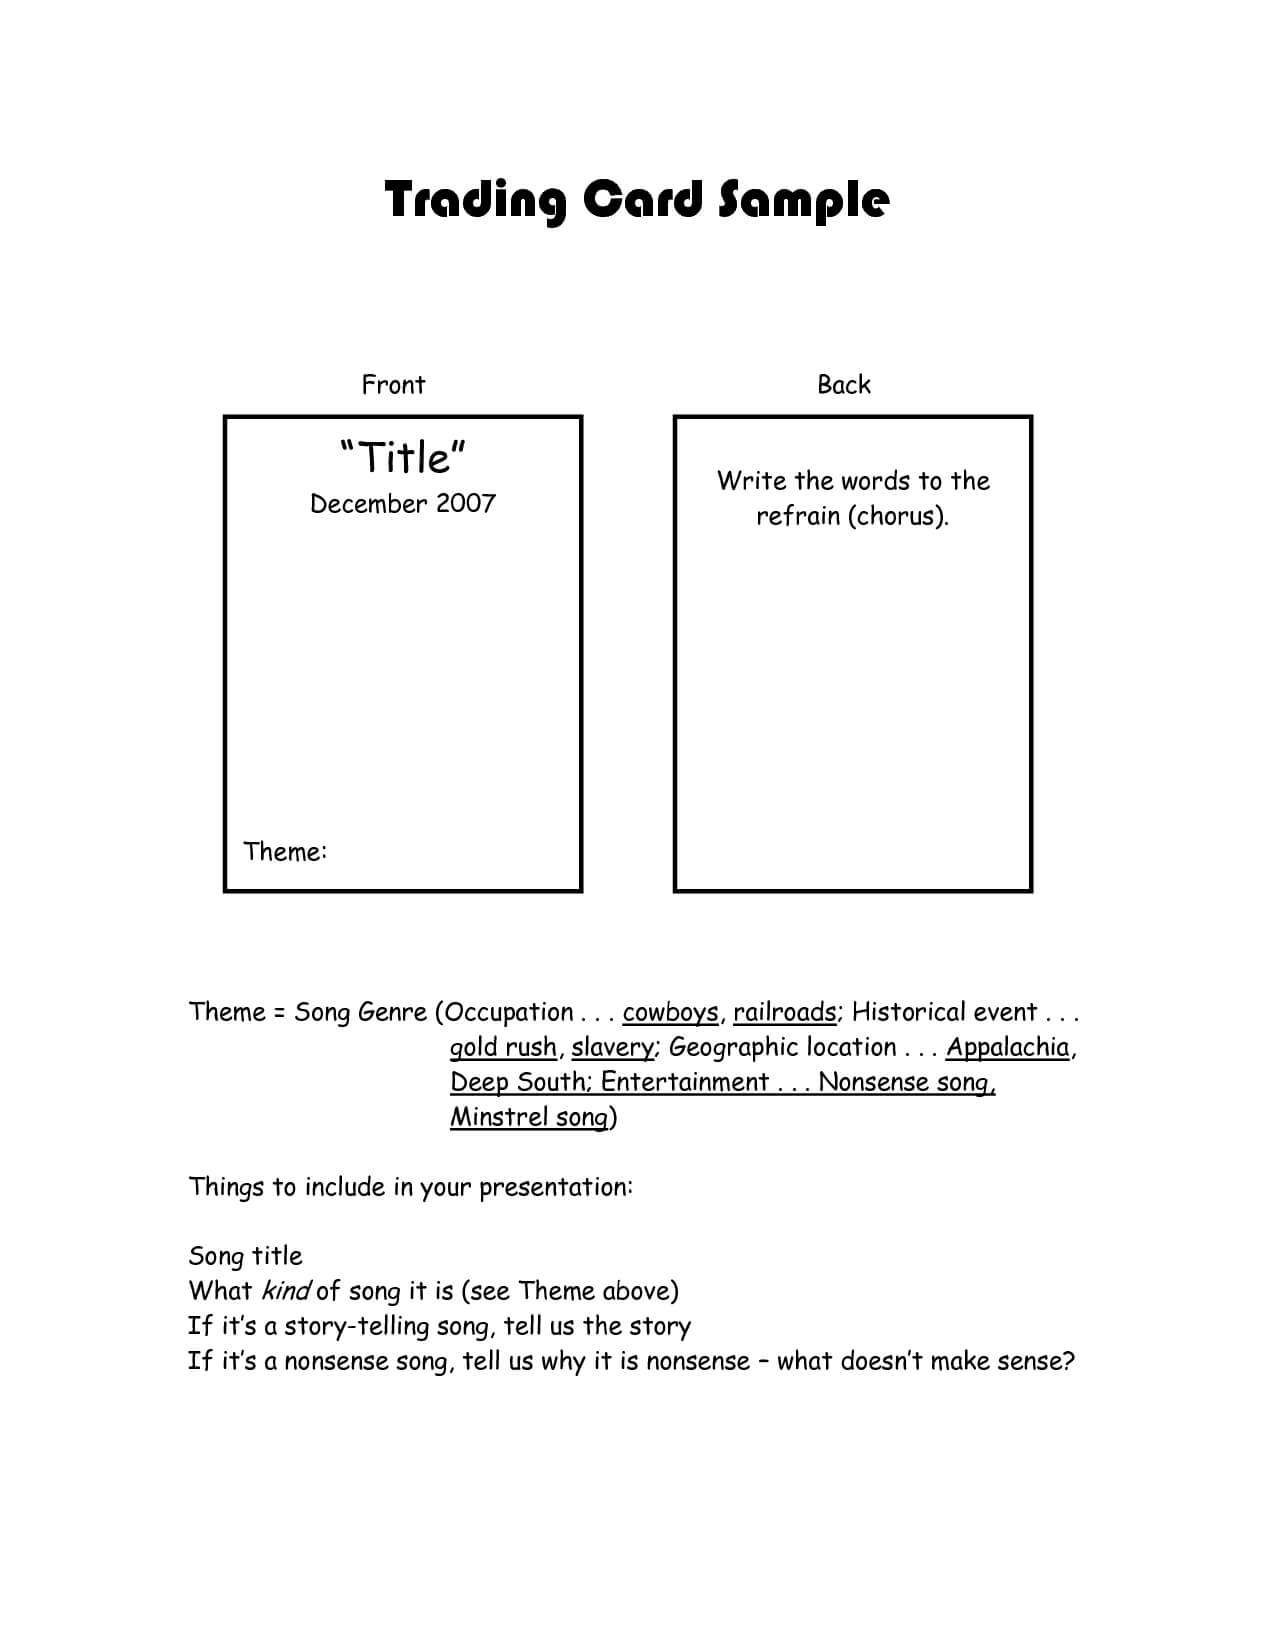 Best Photos Of Trading Card Template For Word - Trading Card pertaining to Superhero Trading Card Template